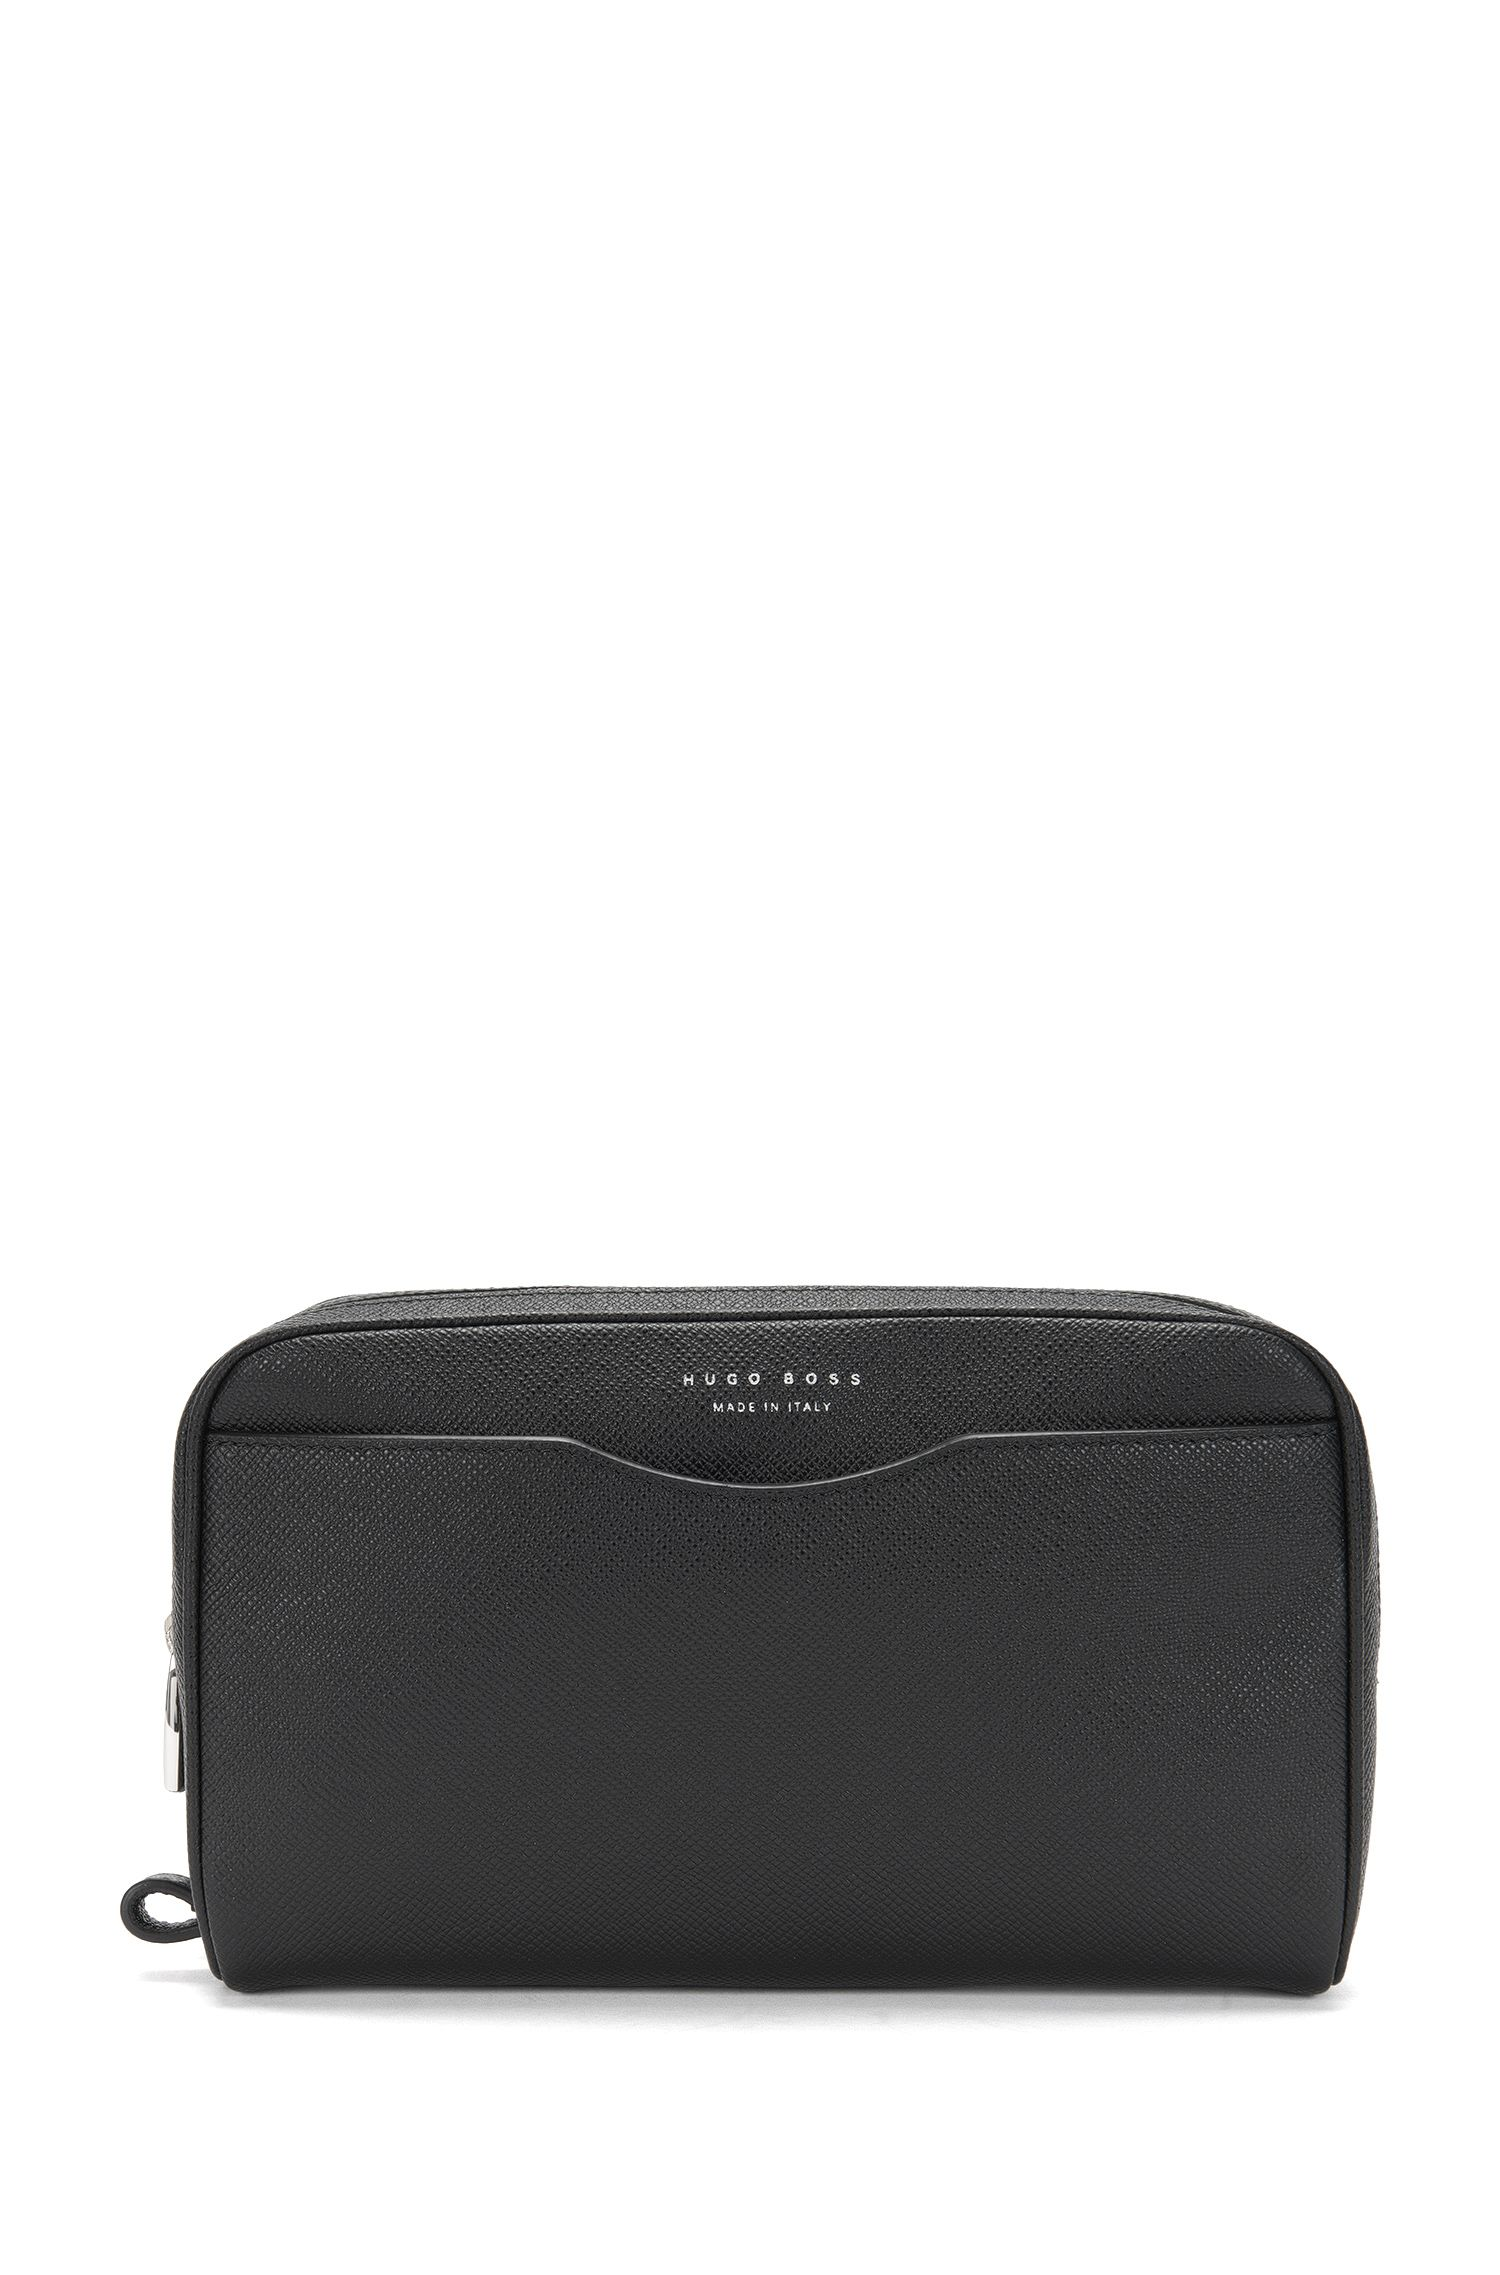 Signature Collection Pouch aus Palmellato-Leder